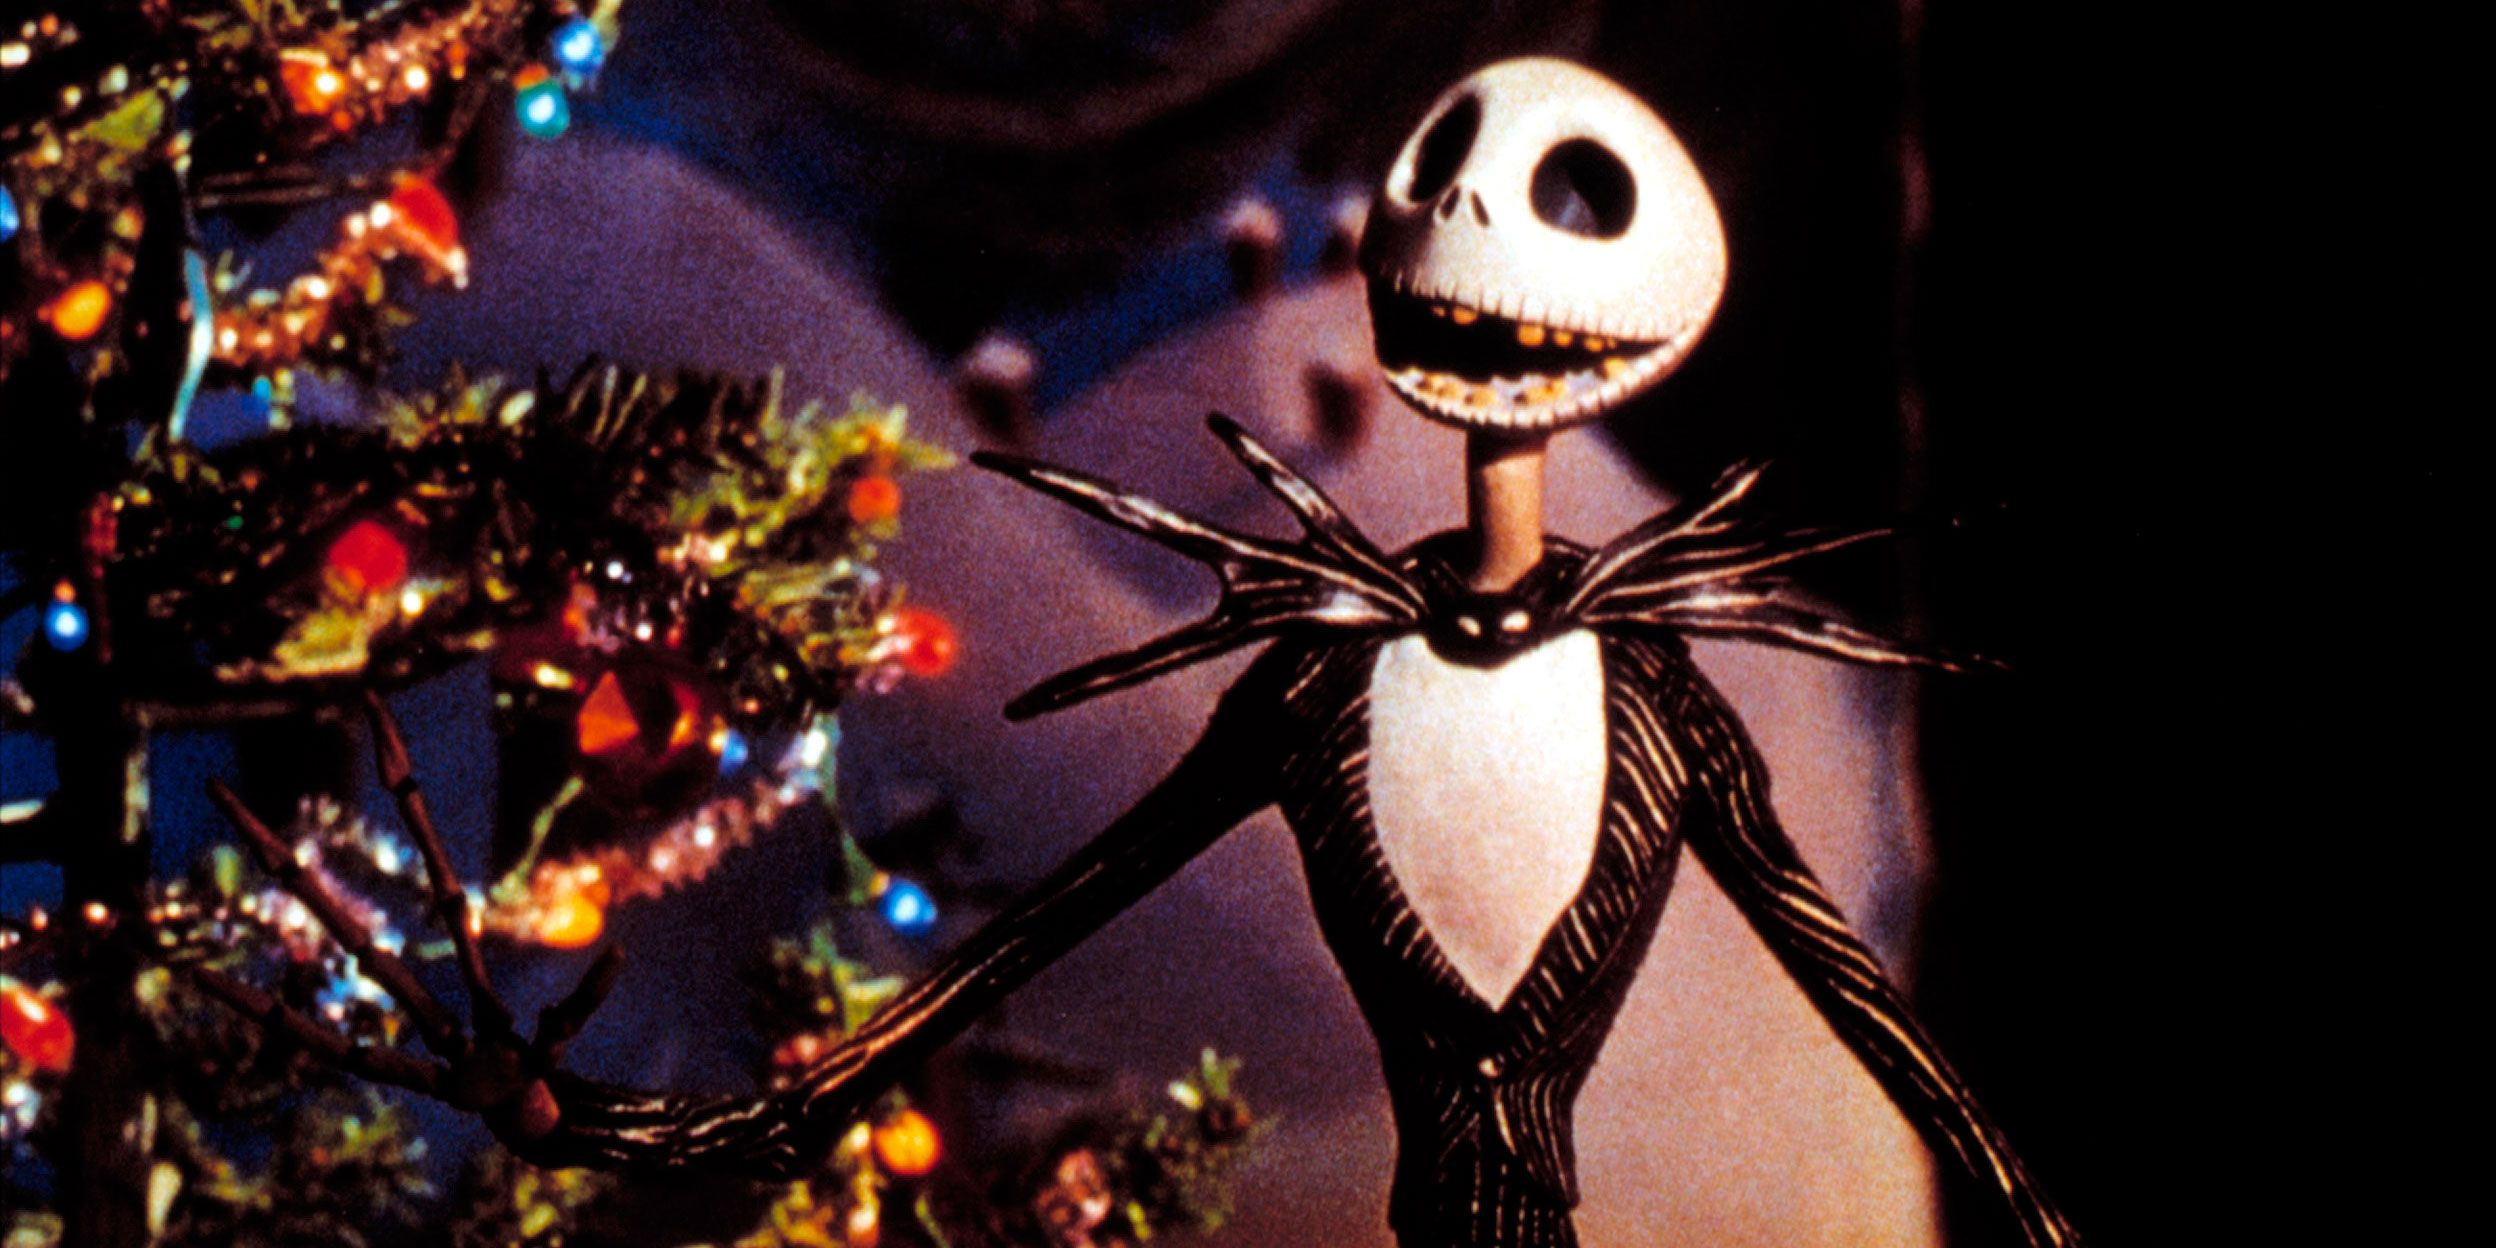 Is The Nightmare Before Christmas a Halloween movie or a Christmas ...